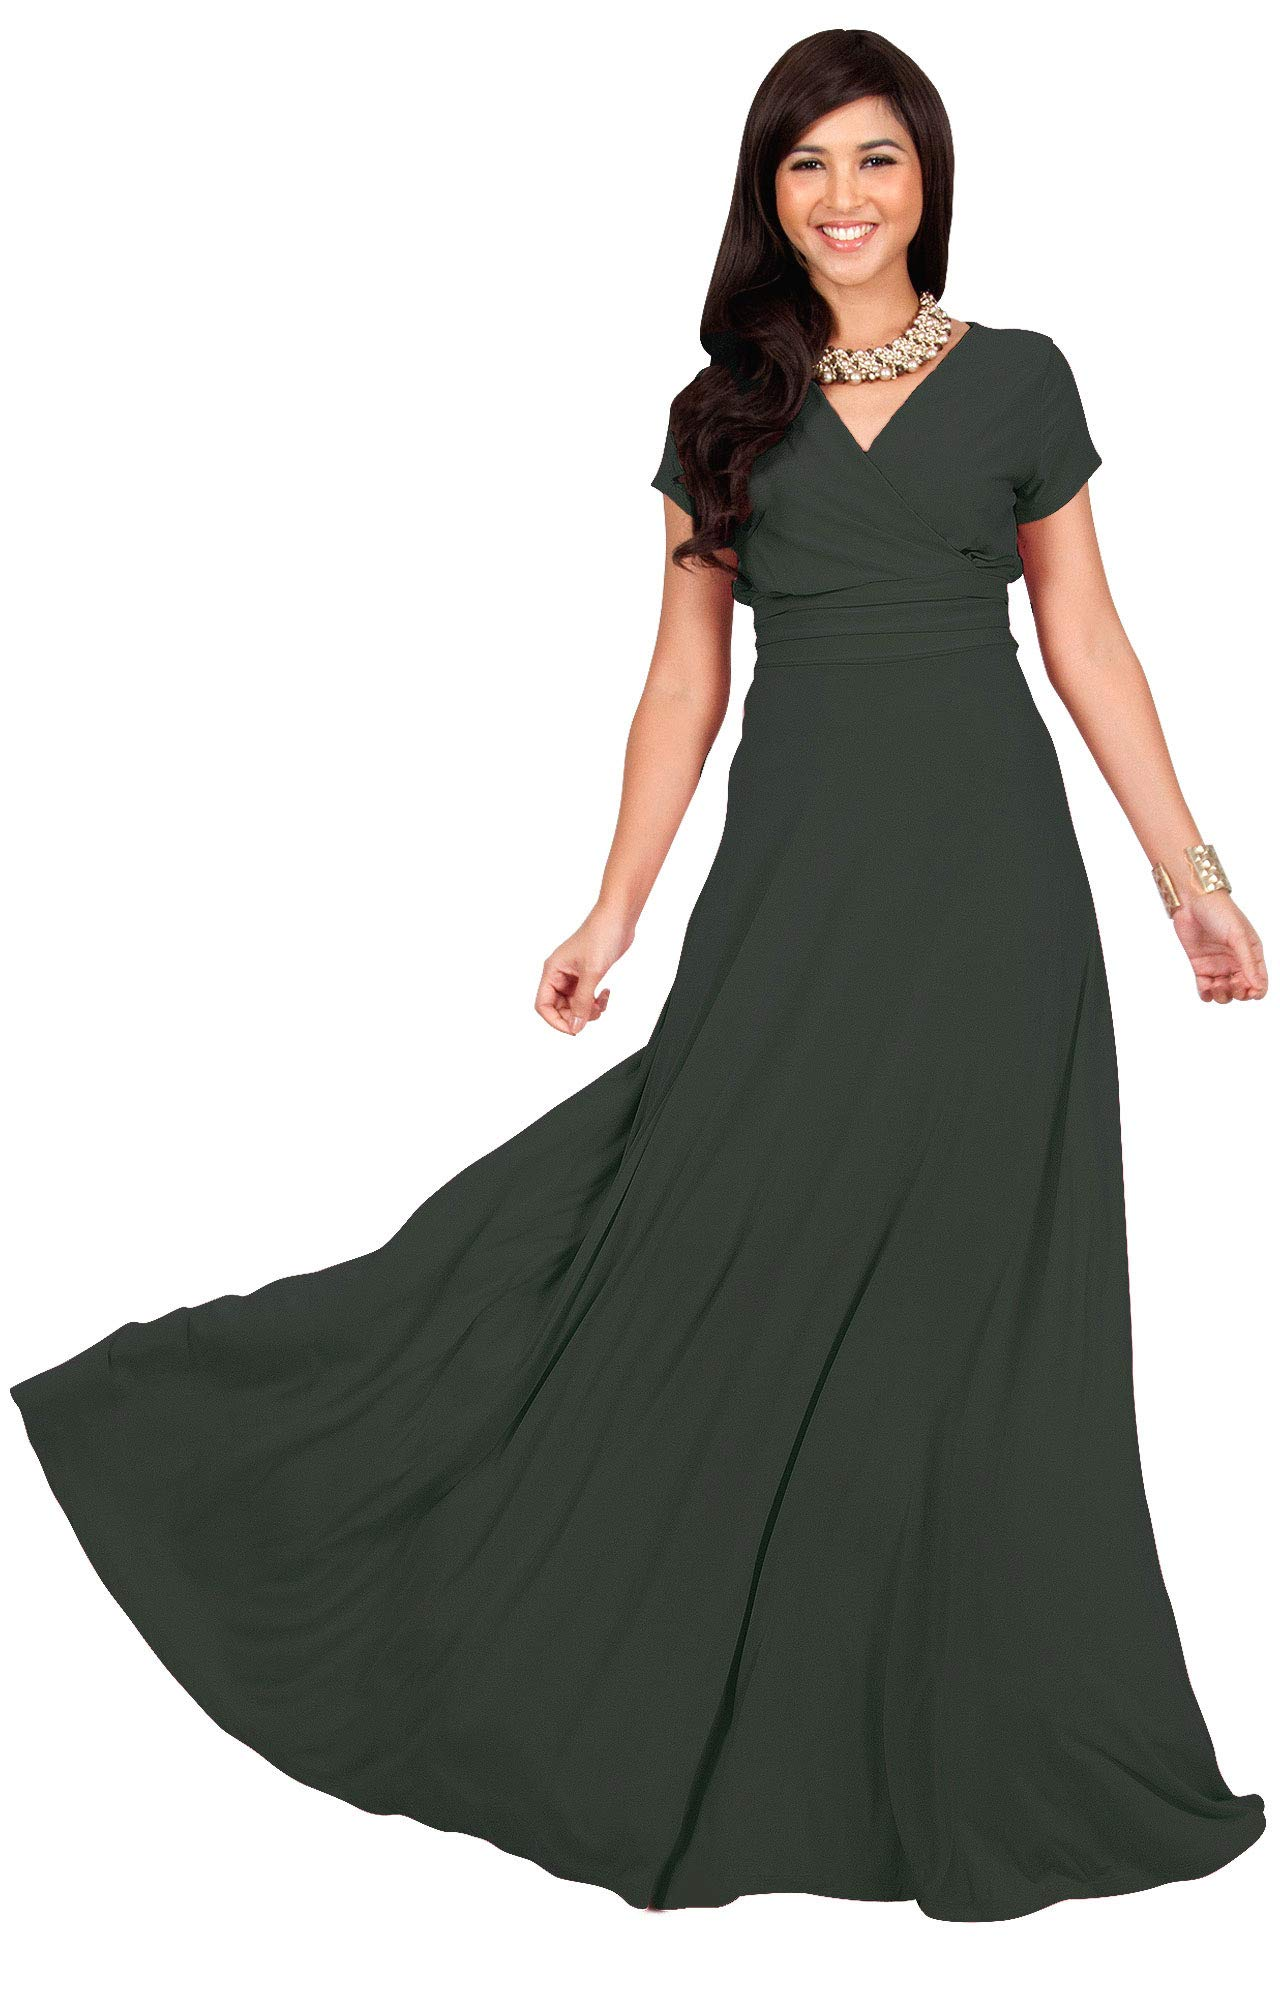 c2ce70dd43750 KOH KOH Womens Sexy Cap Short Sleeve V-neck Flowy Cocktail Gown. Product  main image